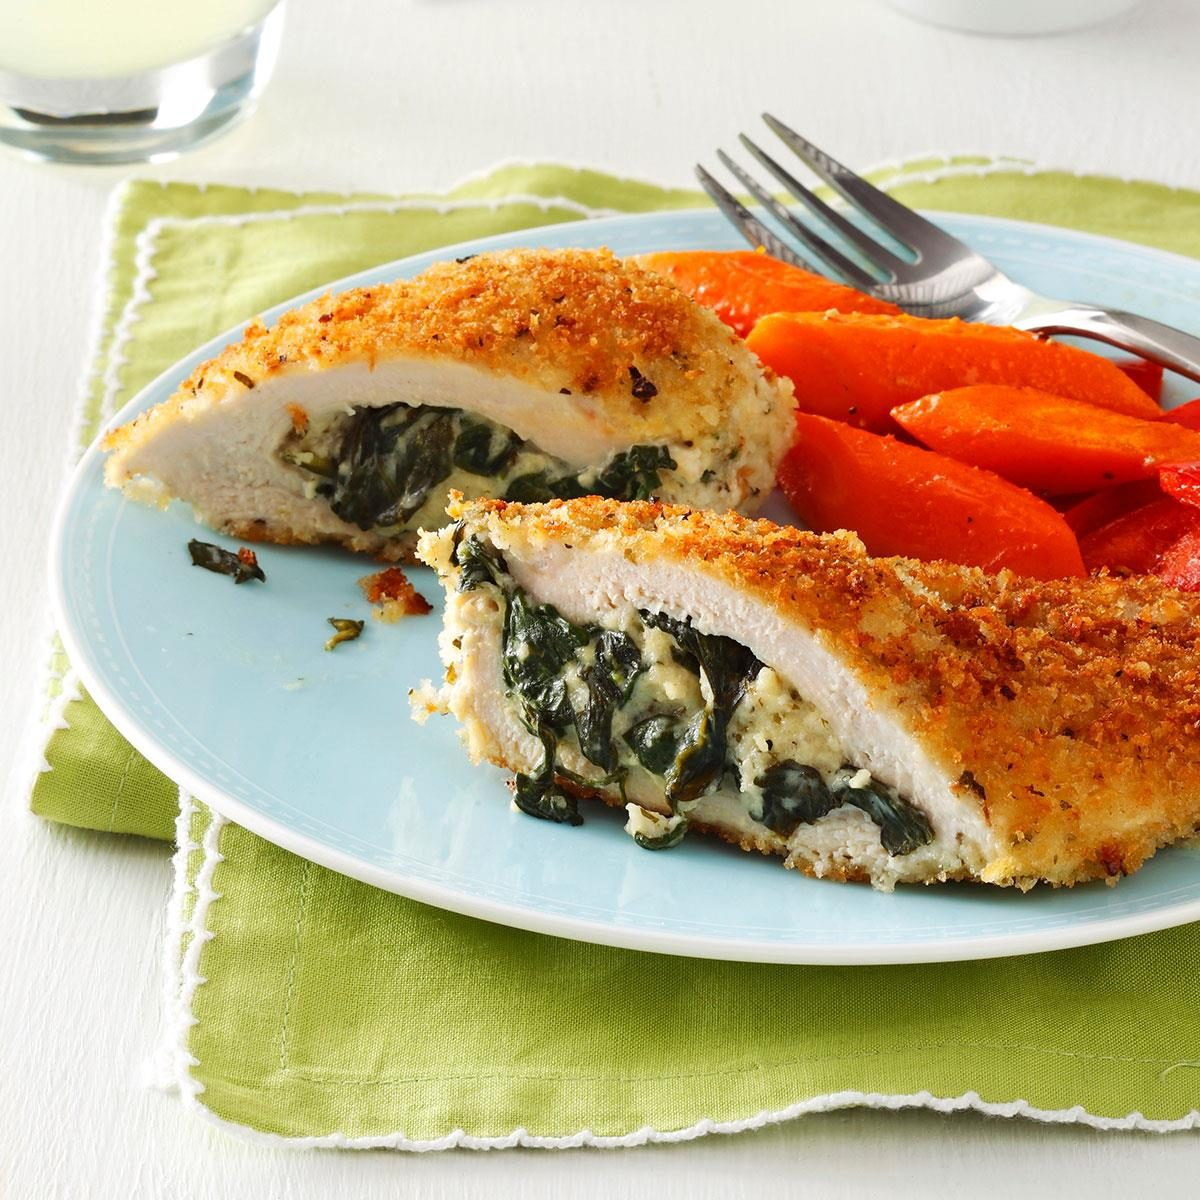 Makeover Spinach-Stuffed Chicken Pockets Recipe